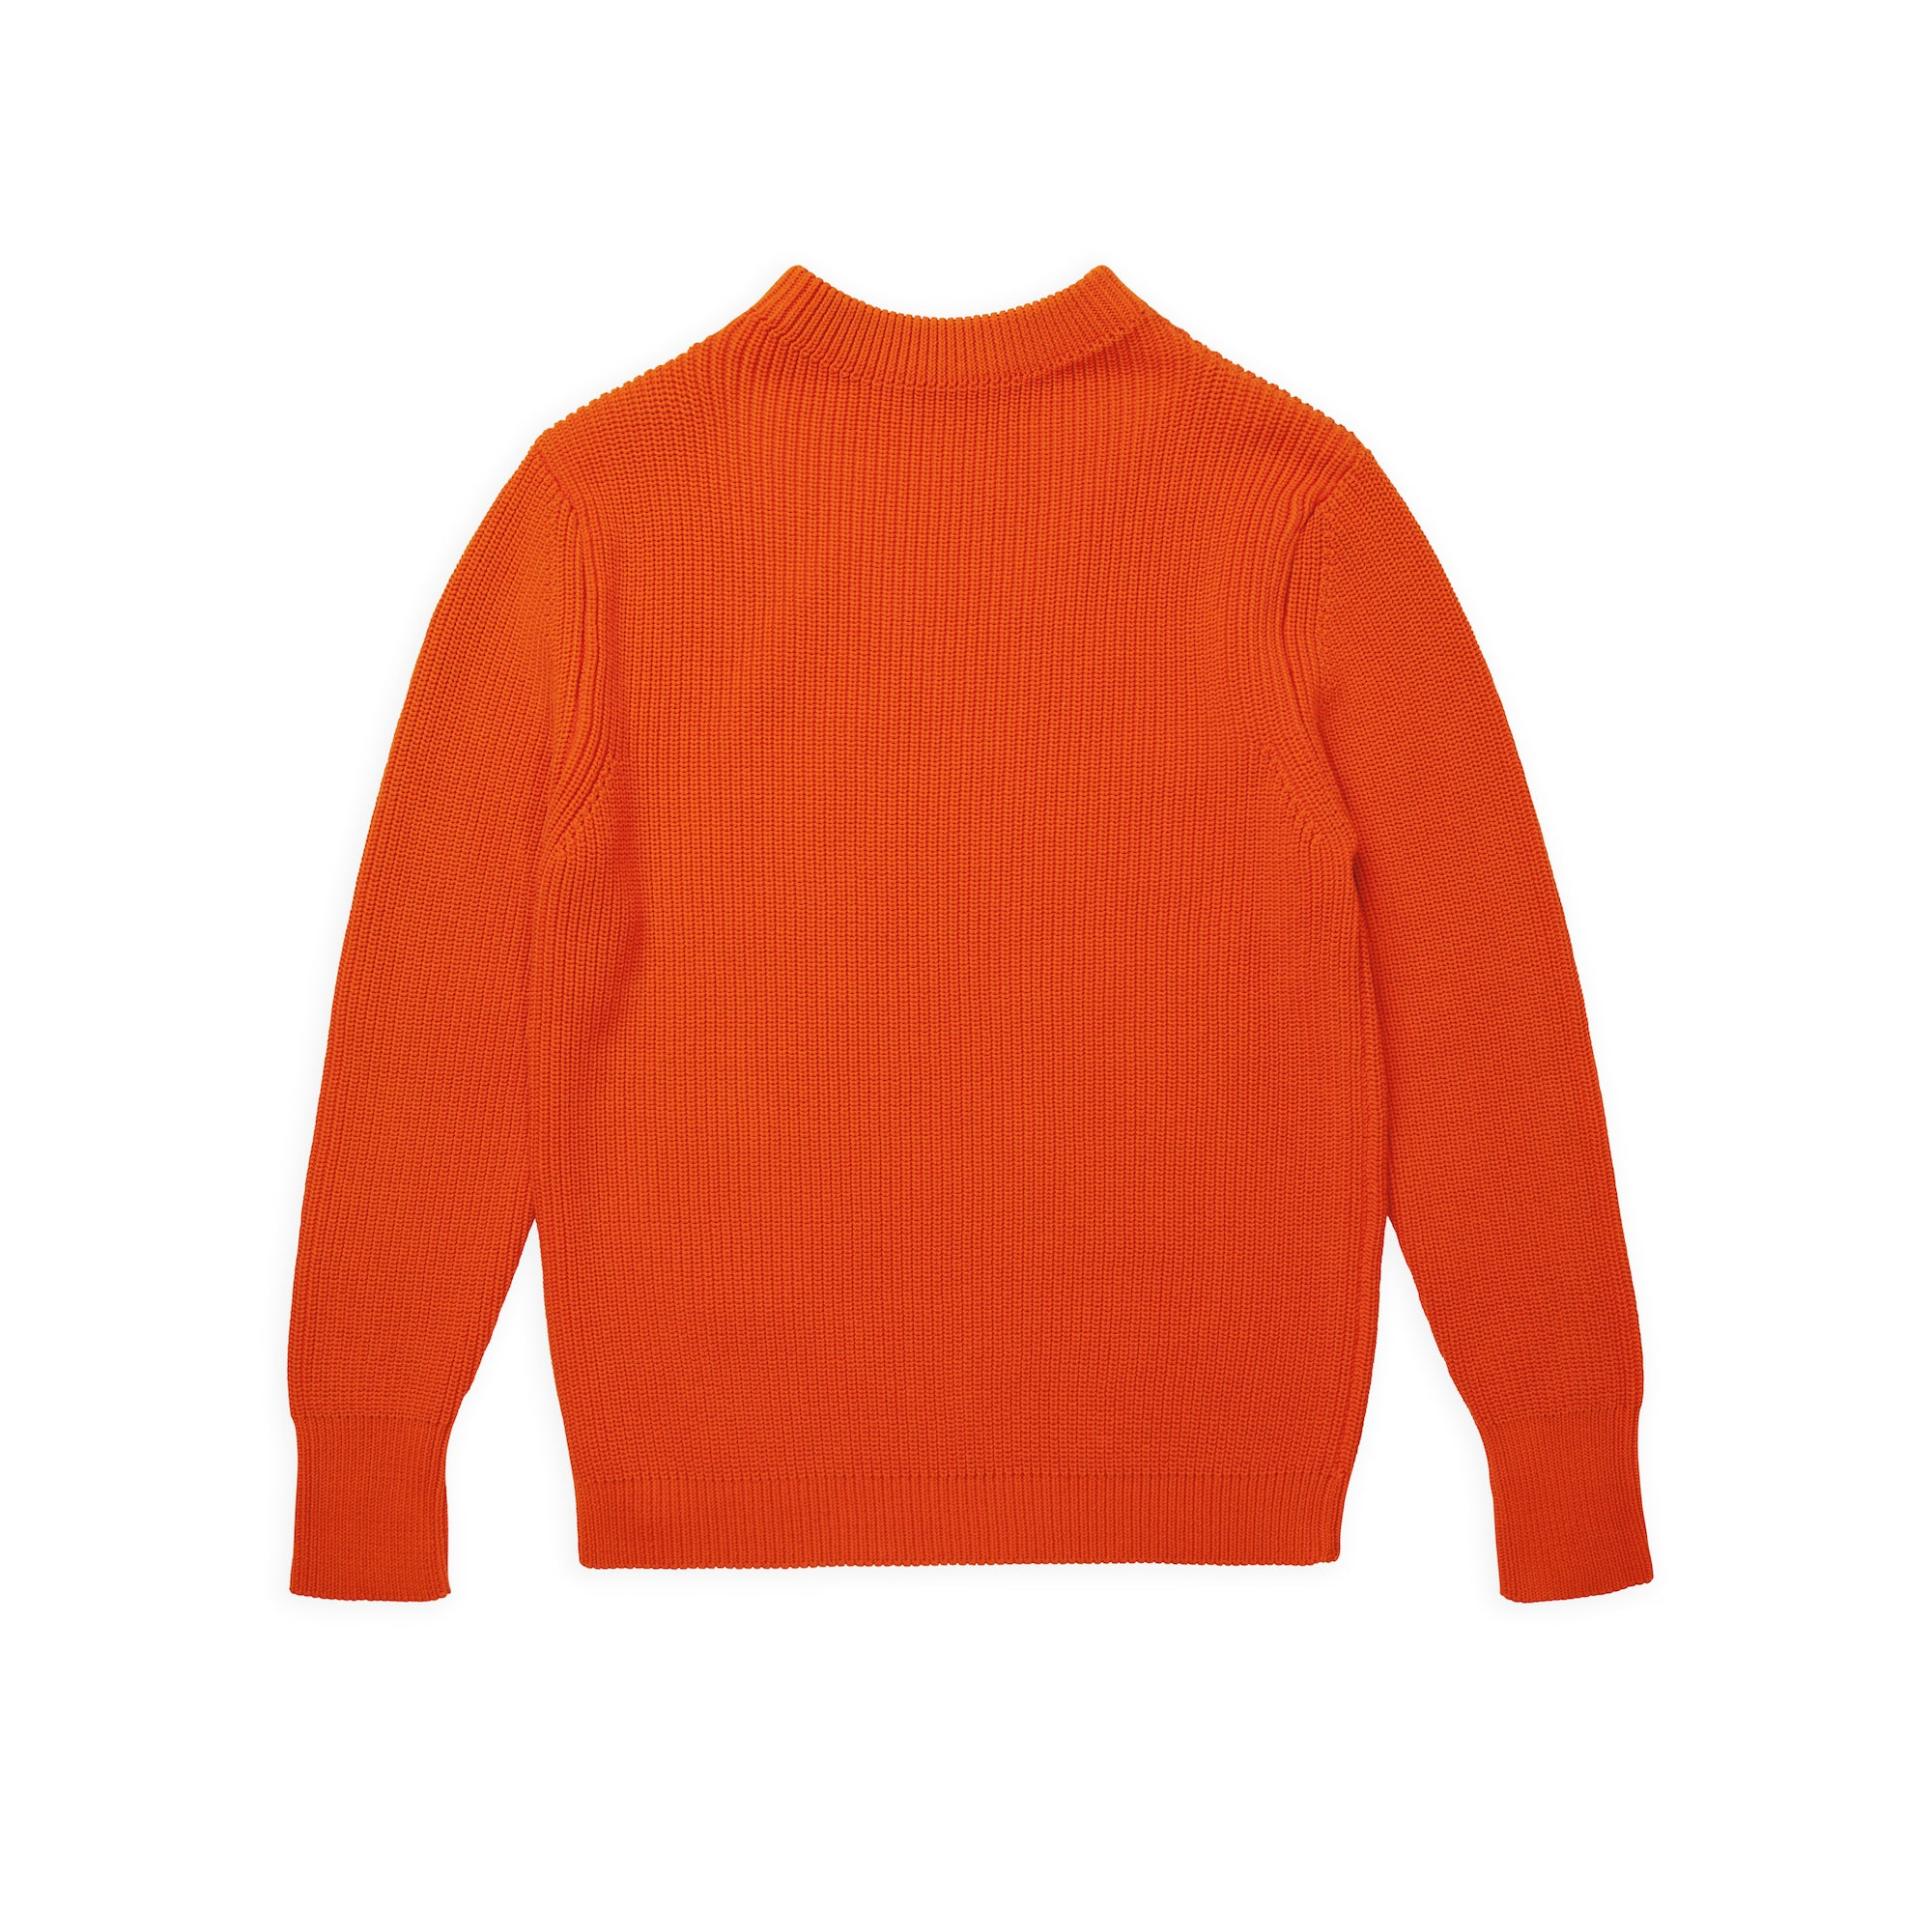 Cotton Crewneck - Orange